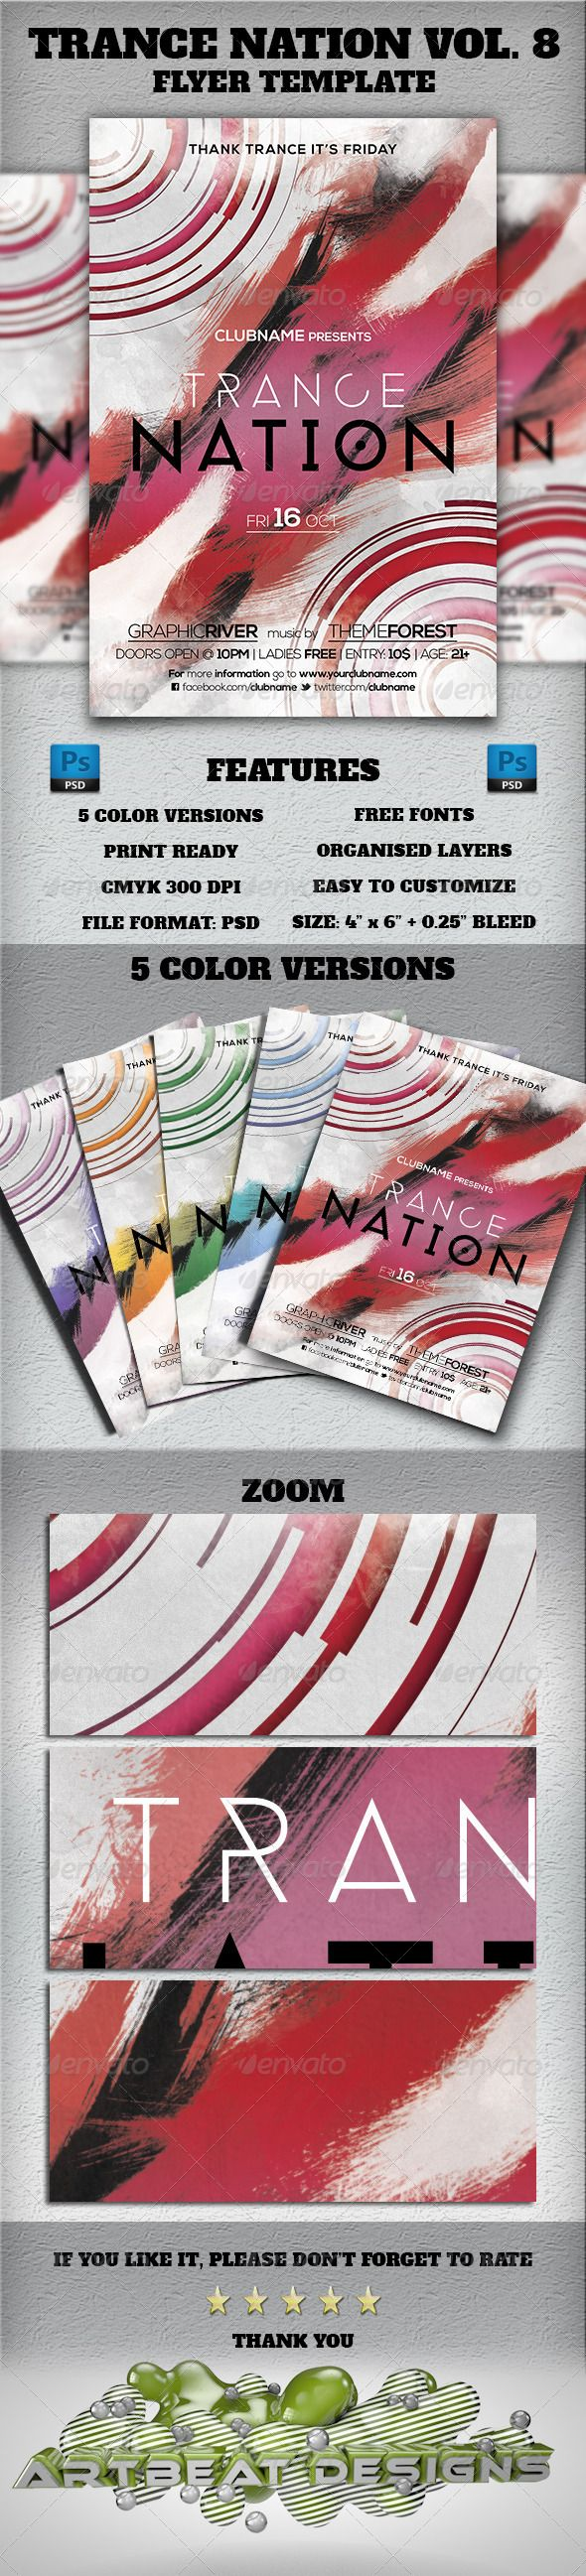 Trance Nation Vol. 8 Flyer Template